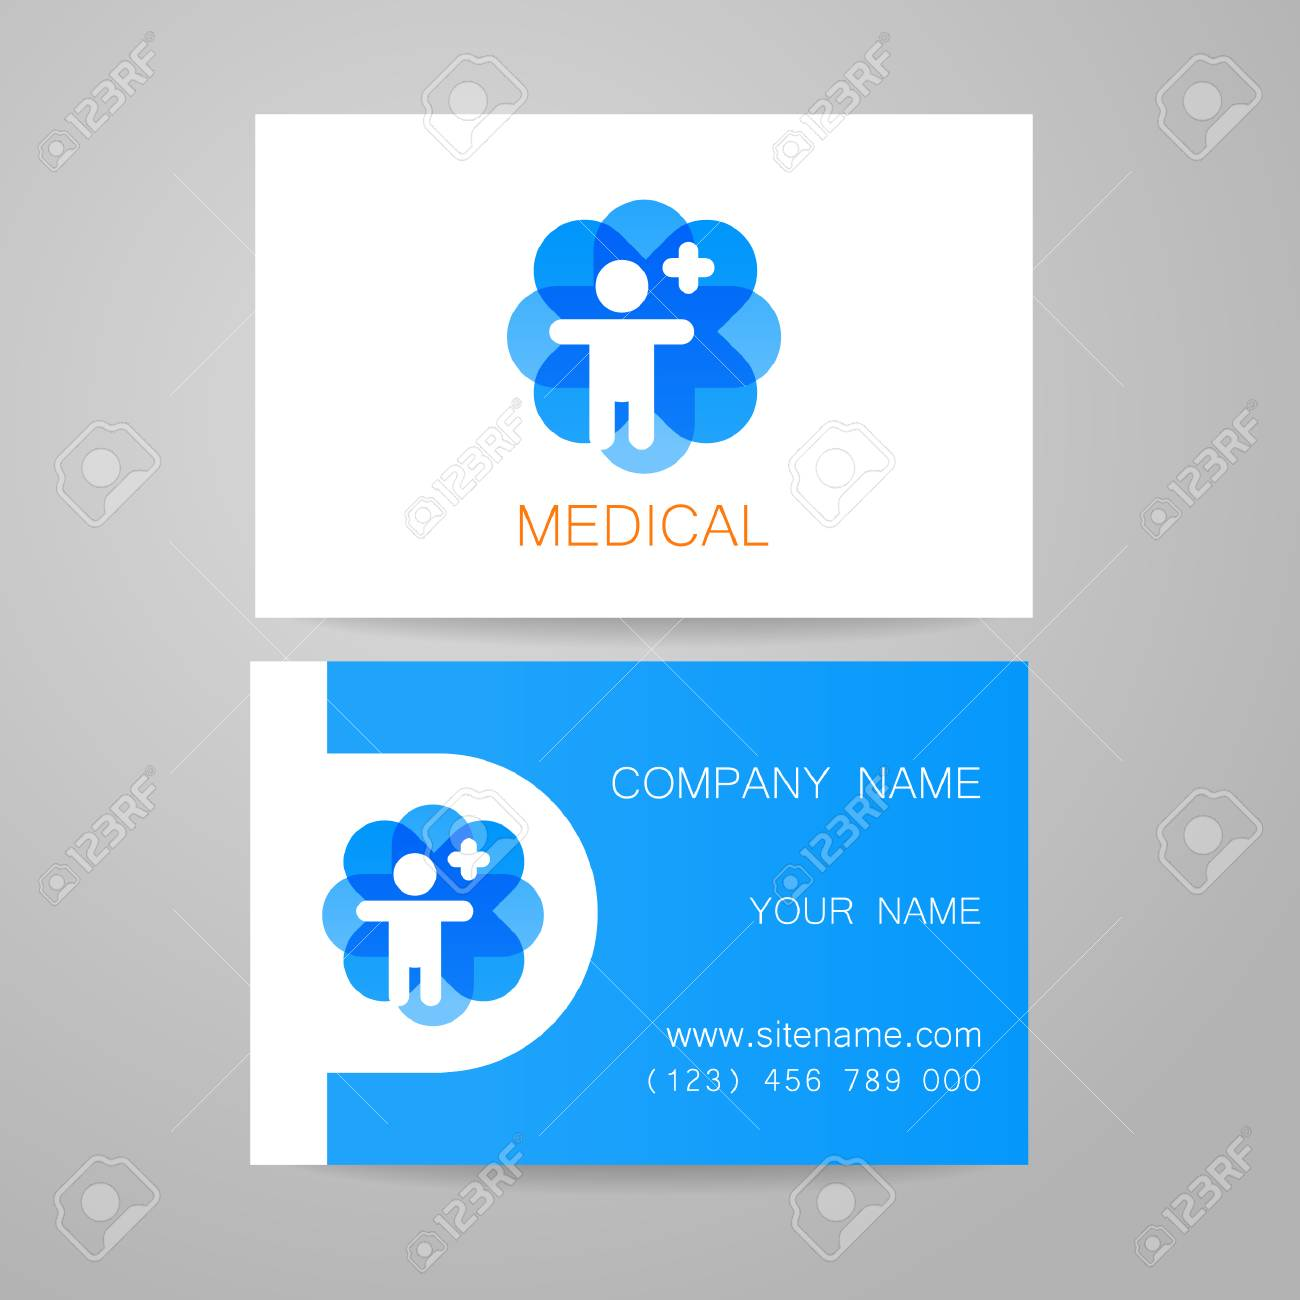 Template of medical business cards royalty free cliparts vectors template of medical business cards stock vector 44647873 reheart Image collections